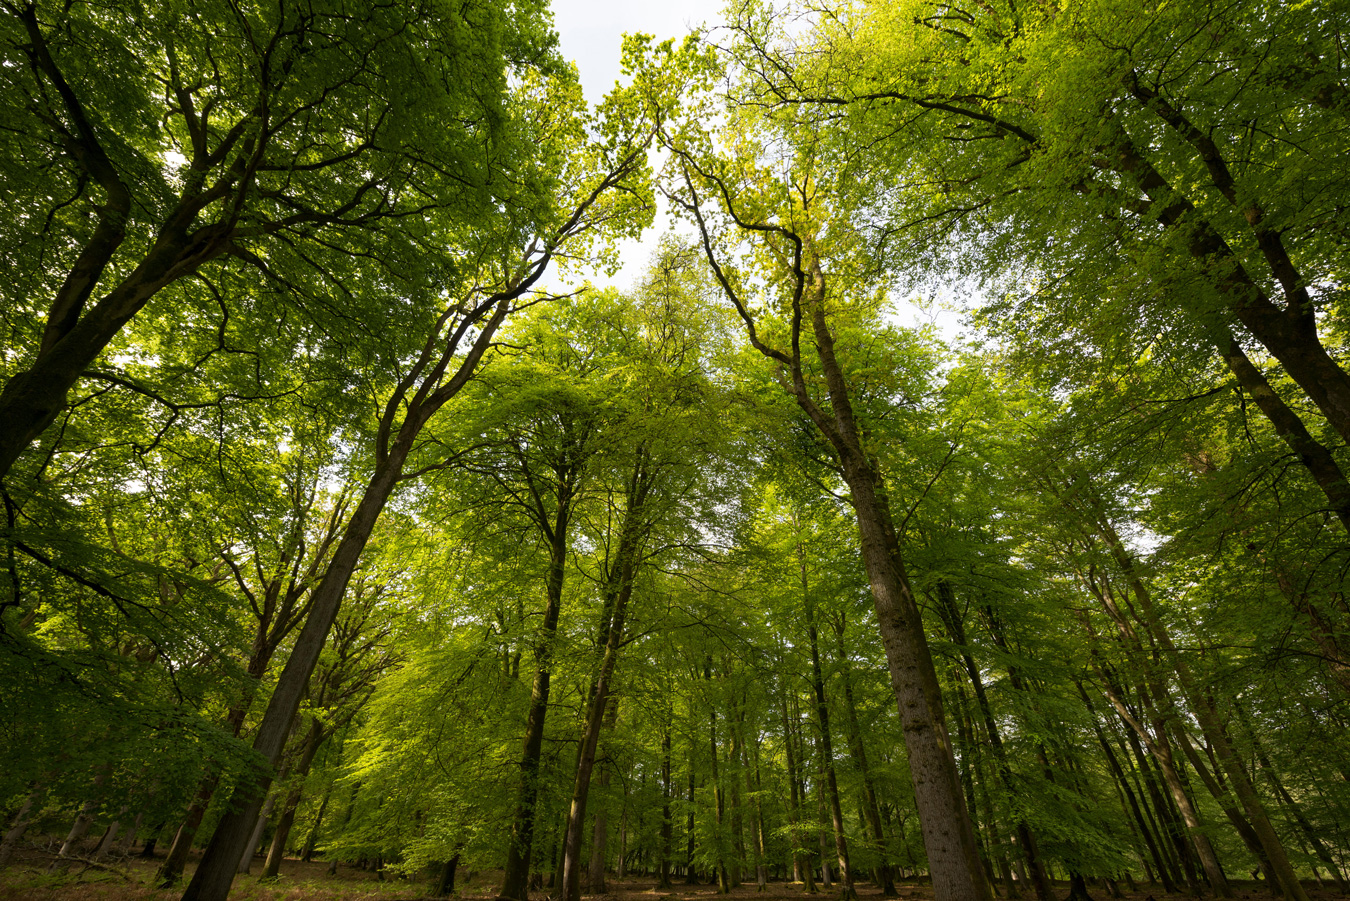 An inclosure of beech trees in the New Forest, Hampshire, UK. Credit: Brian Fairbrother / Alamy Stock Photo.